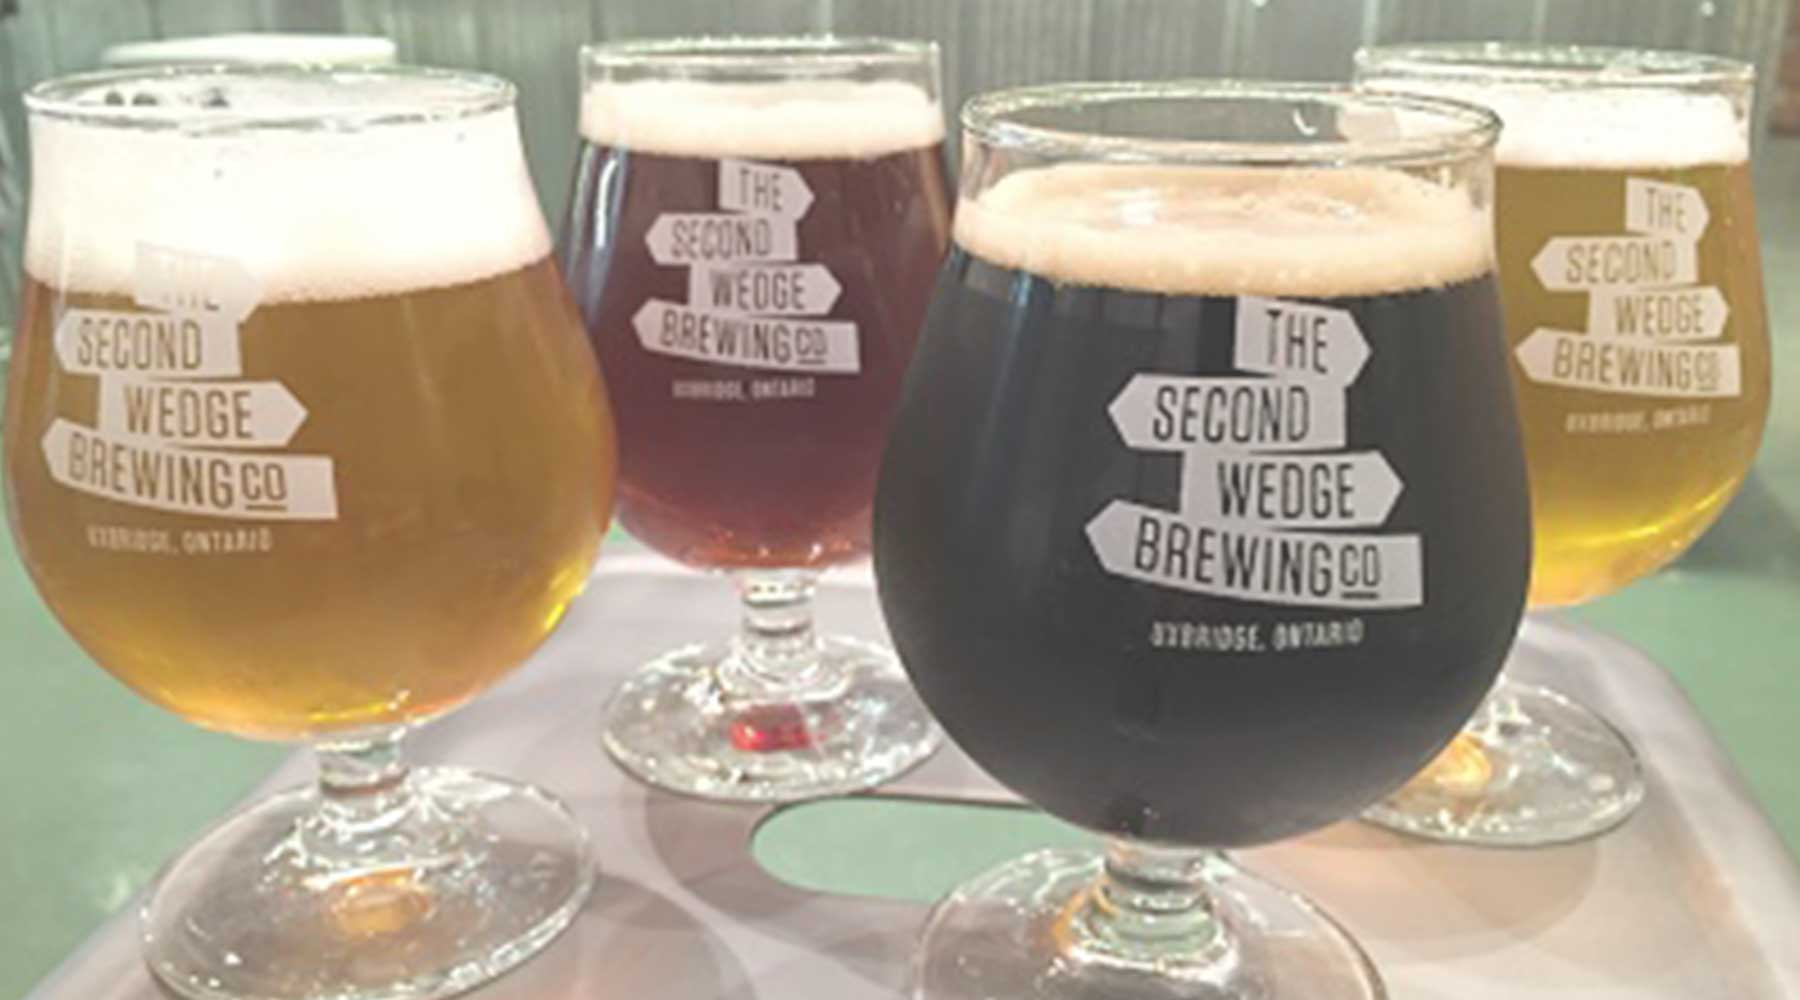 The Second Wedge Brewing Company | Just Wine